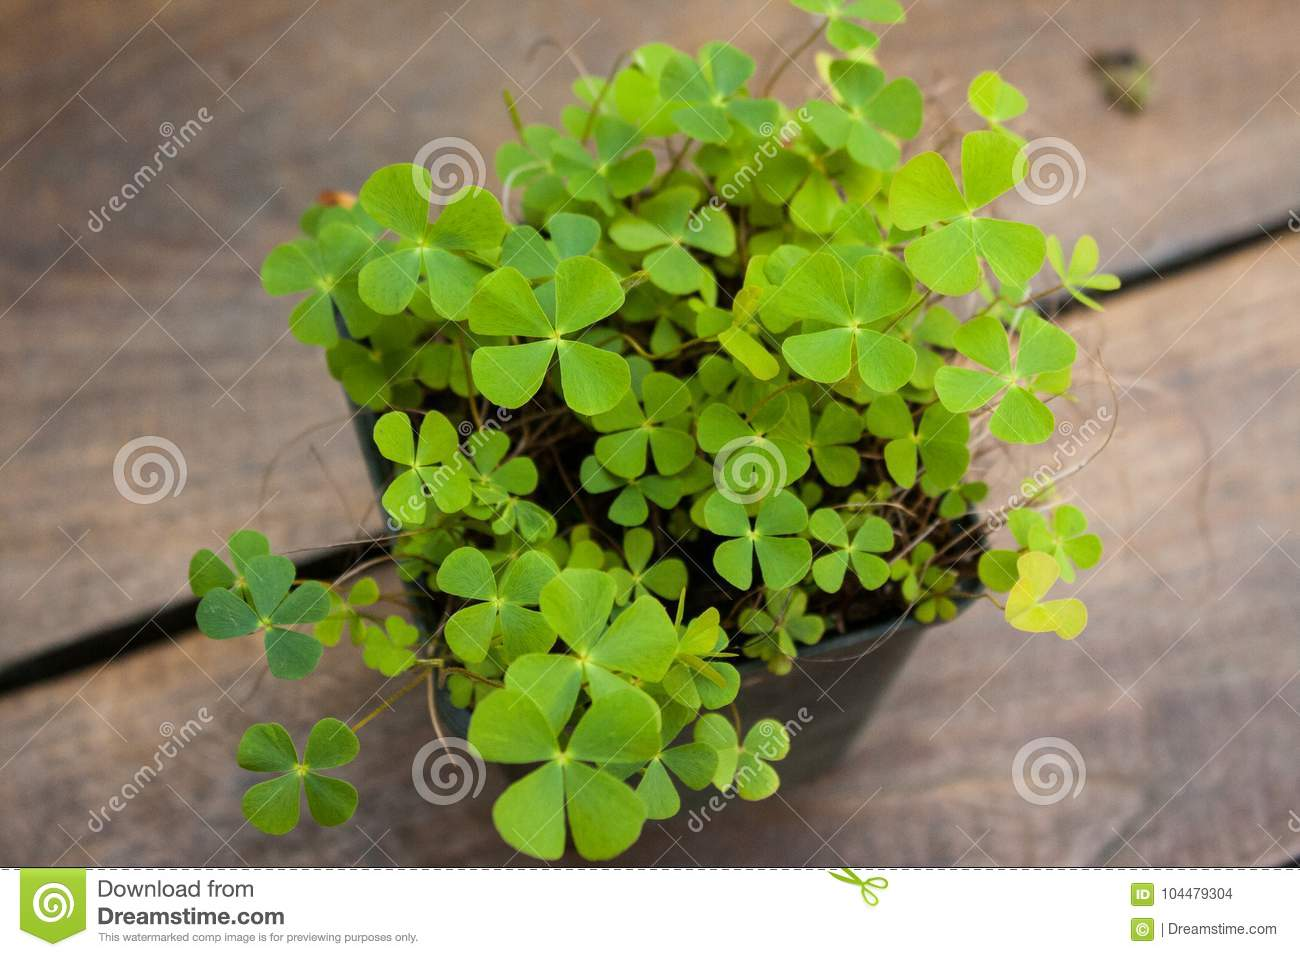 Clover Like Plant On A Wooden Table Stock Photo Image Of Growing